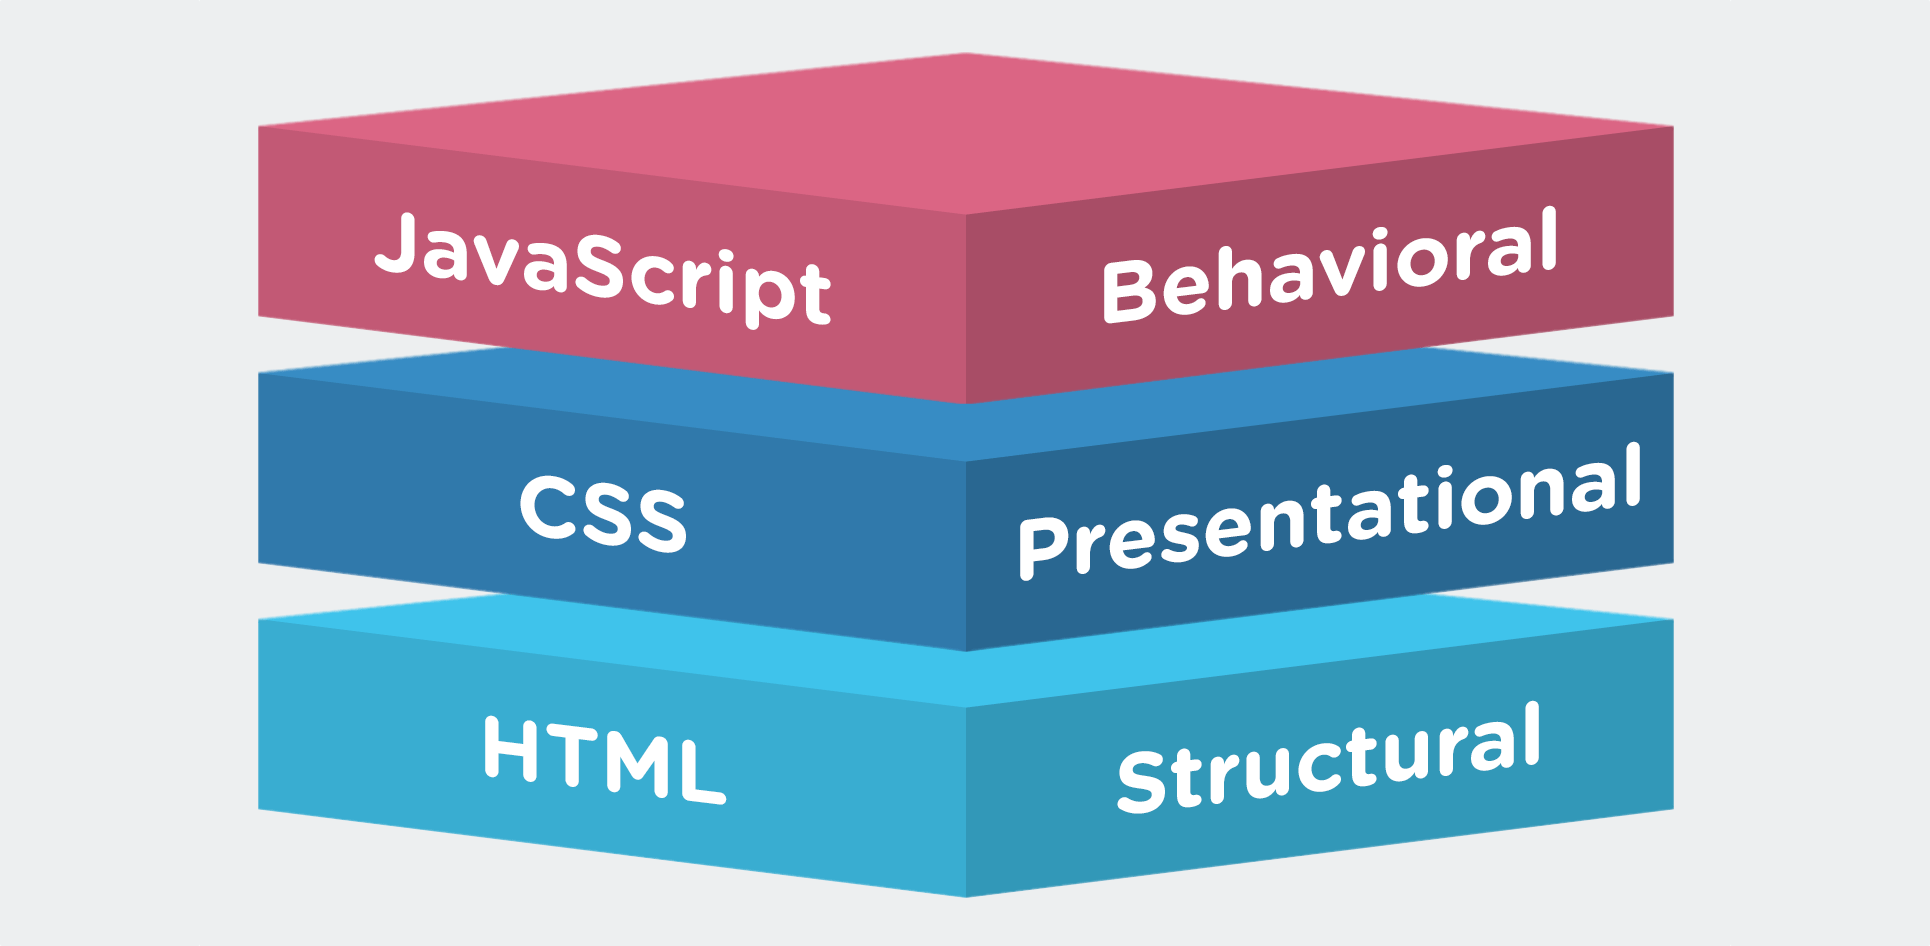 HTML is for structure, CSS is for presentation, and Javascript is for behavioral interaction